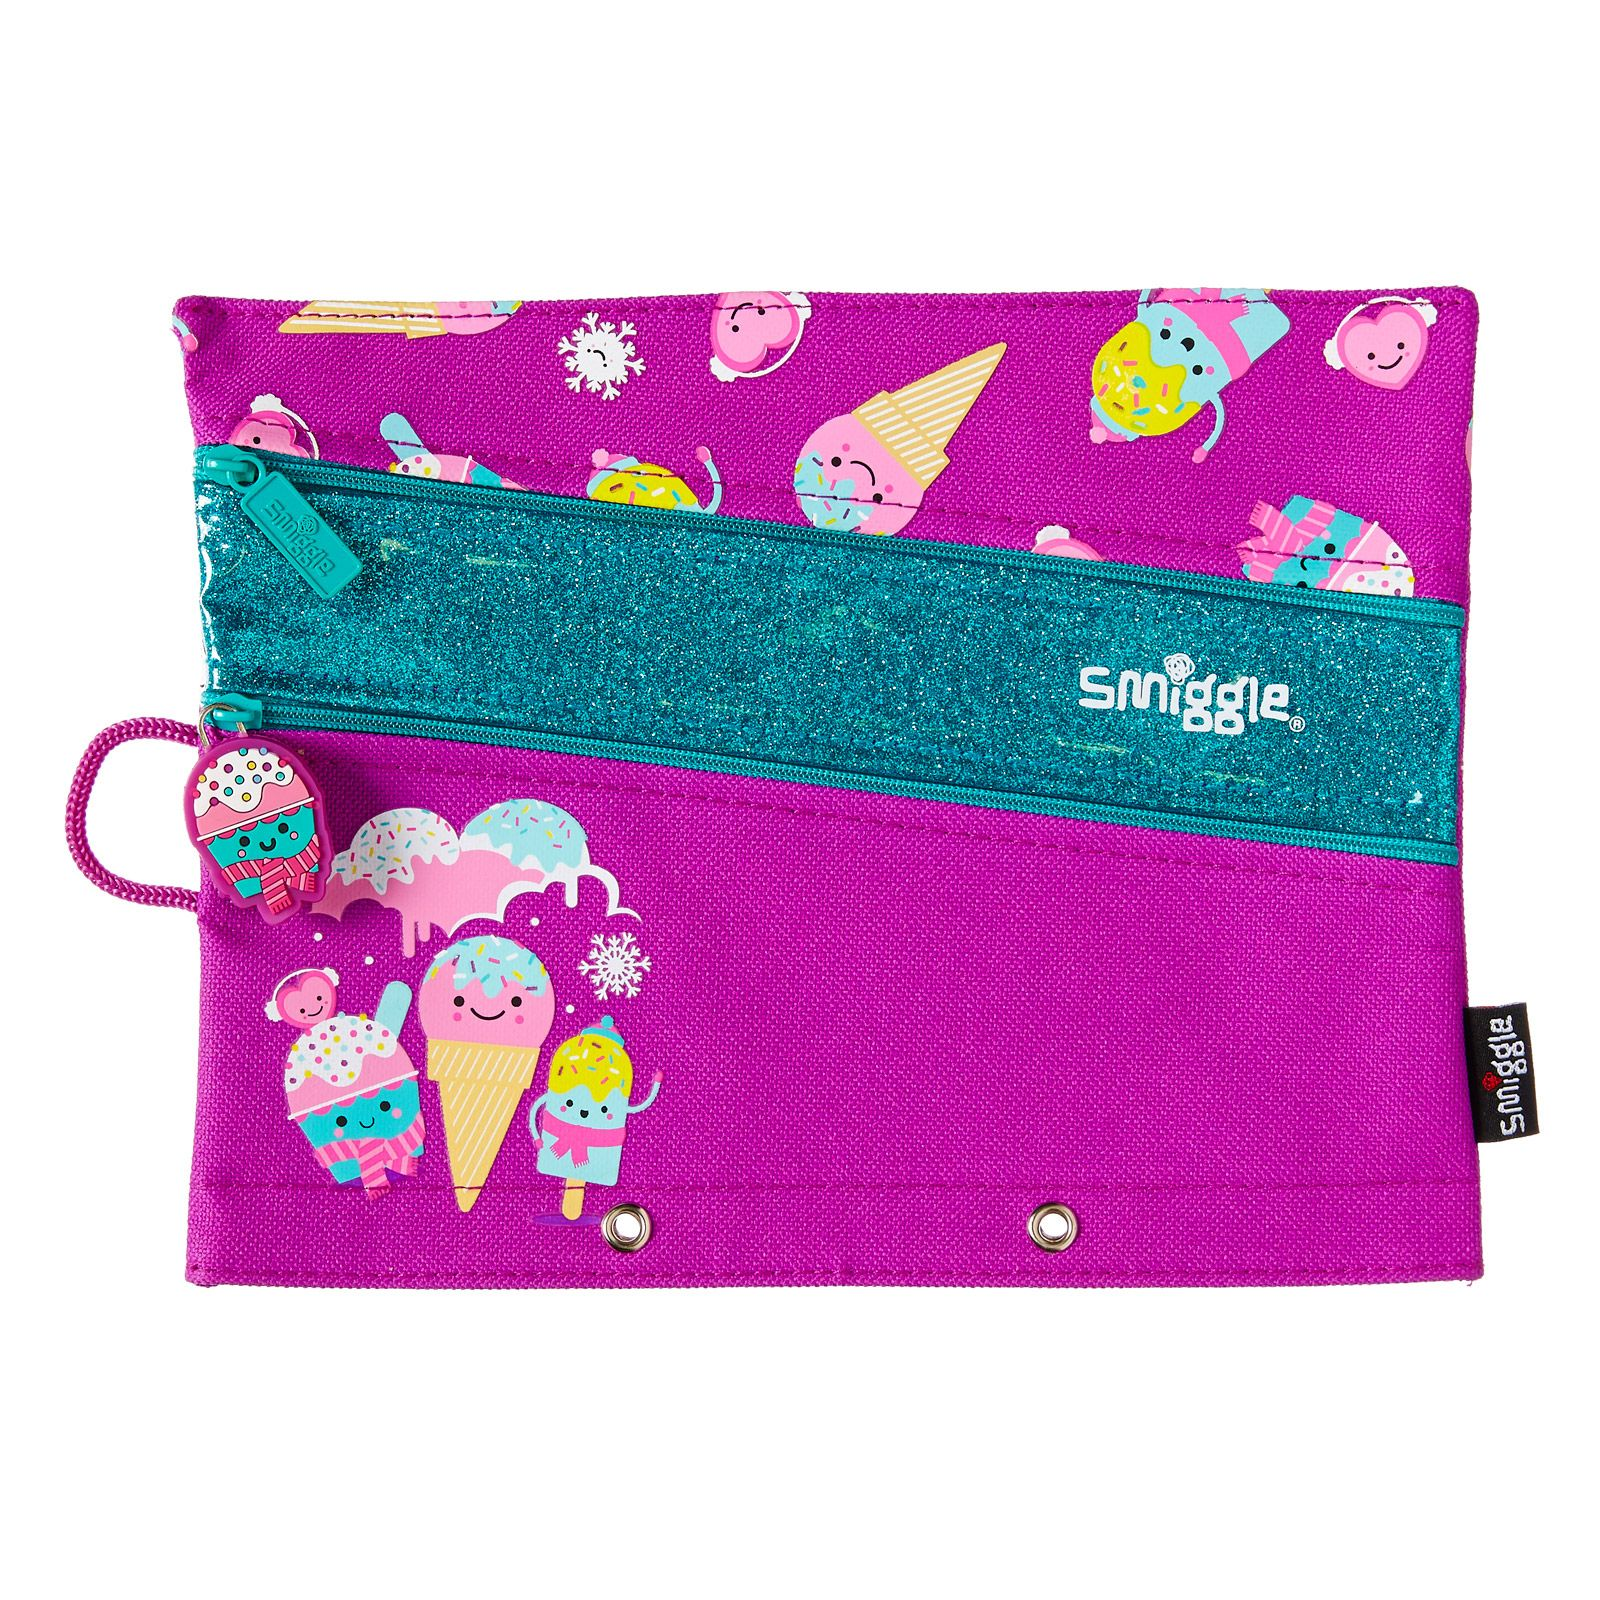 Image for Yums A5 Pencil Case from Smiggle UK Material